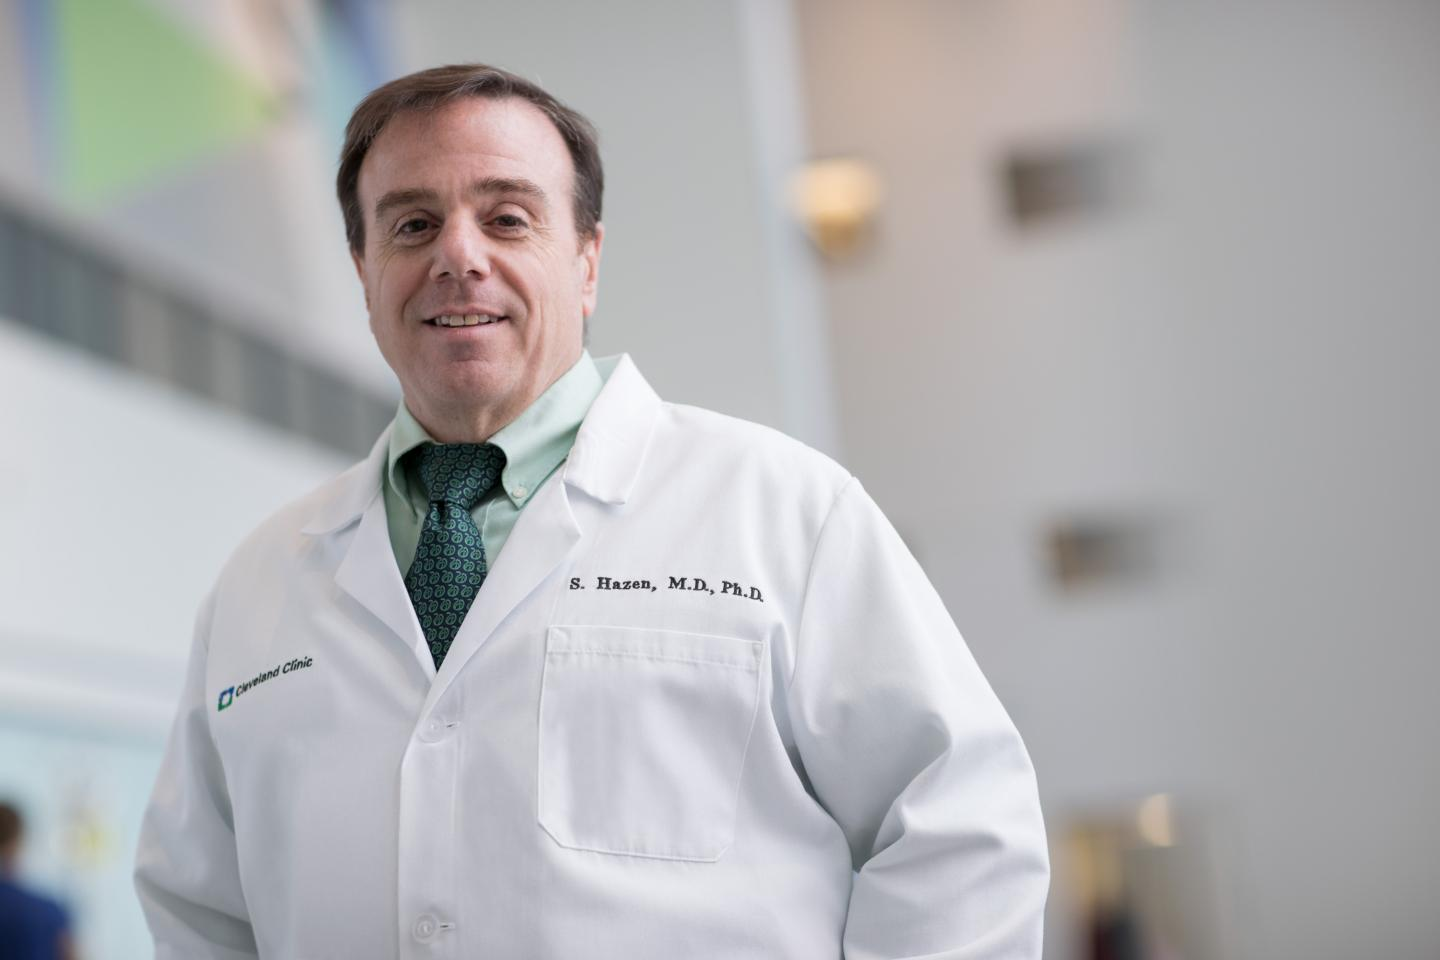 Cleveland Clinic Awarded $12M to Study Gut Microbes and Heart Disease